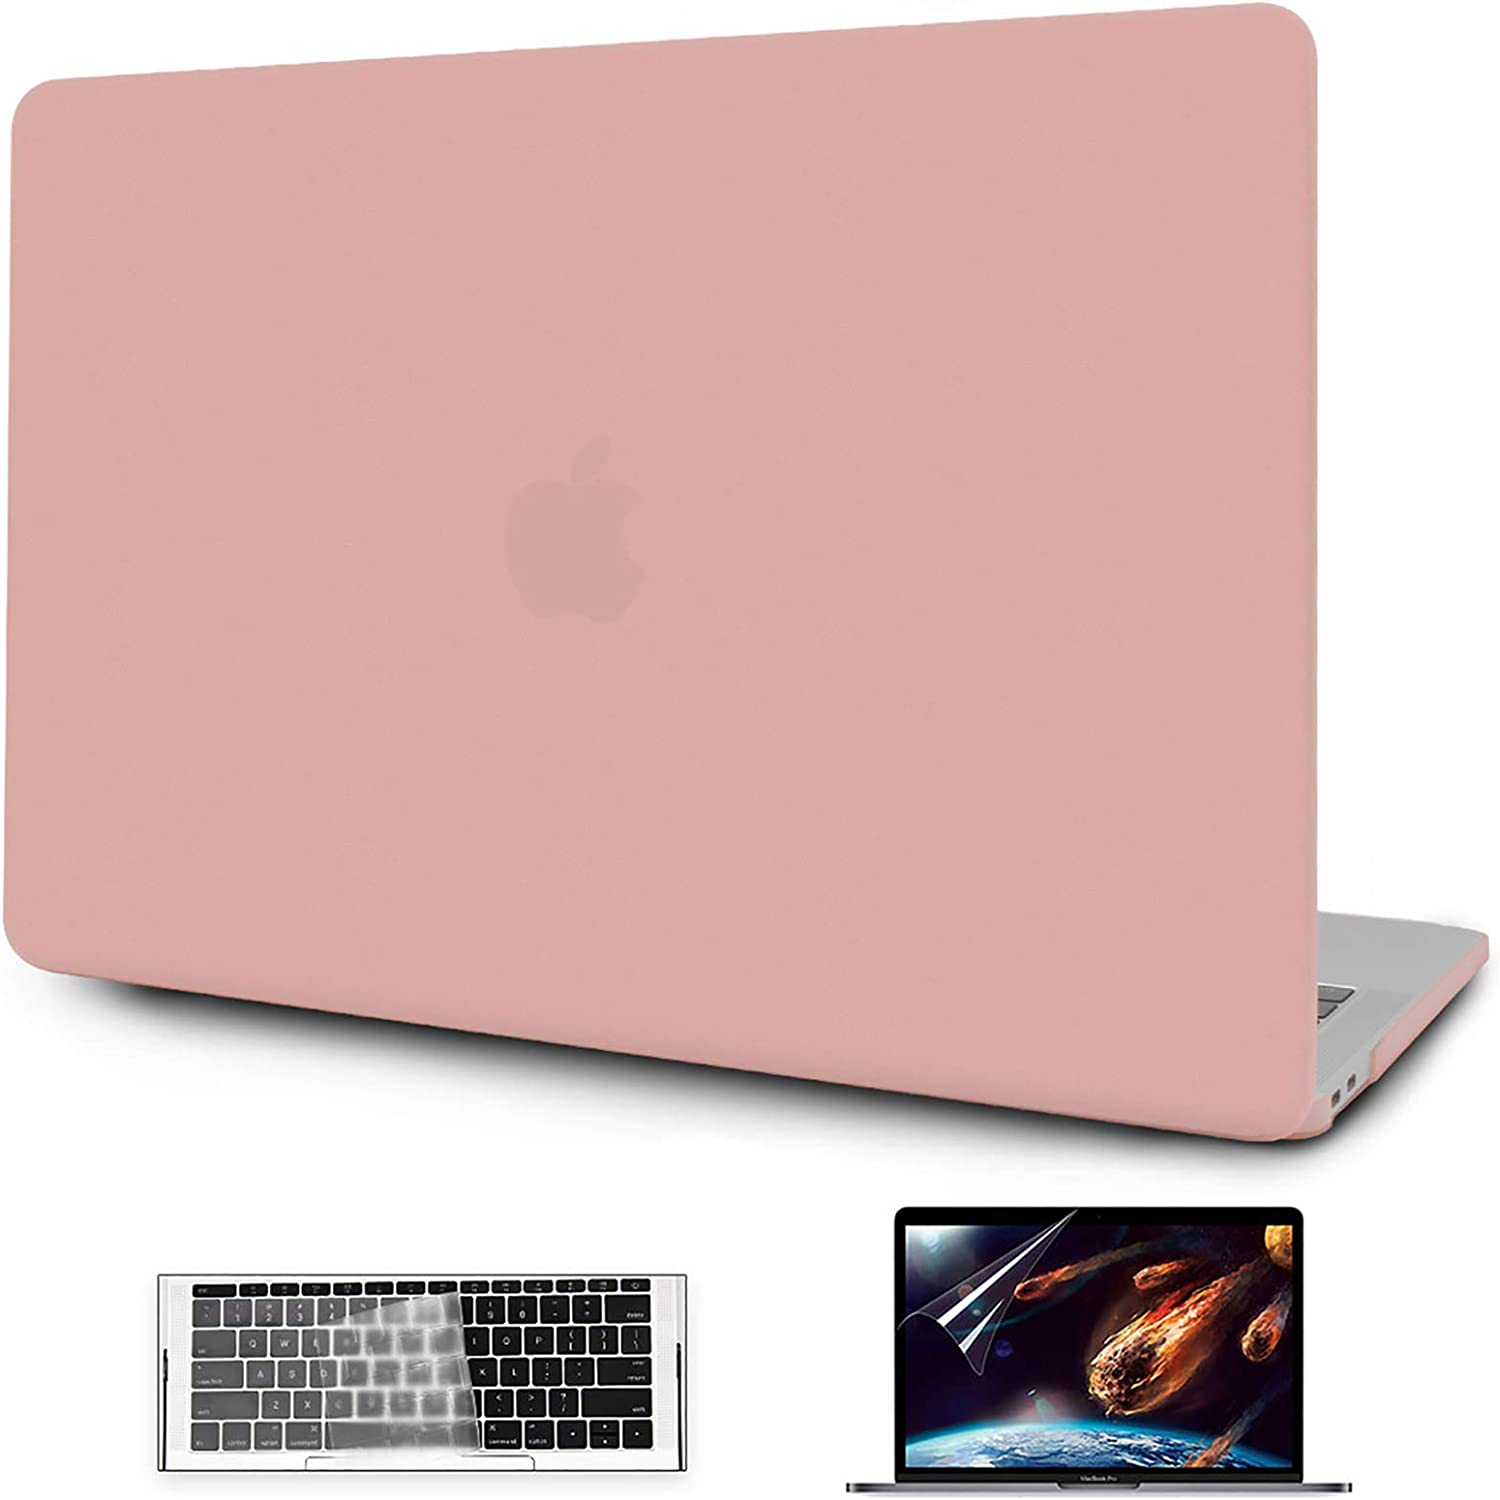 OneGET MacBook Pro 13 Inch Case Laptop Case 2016 2019 A1989 A1706 A1708 A2159 Minimalist Thin Matte PP Hard Shell with Keyboard Cover Screen Protector 3 in 1 Bundle (Pink)